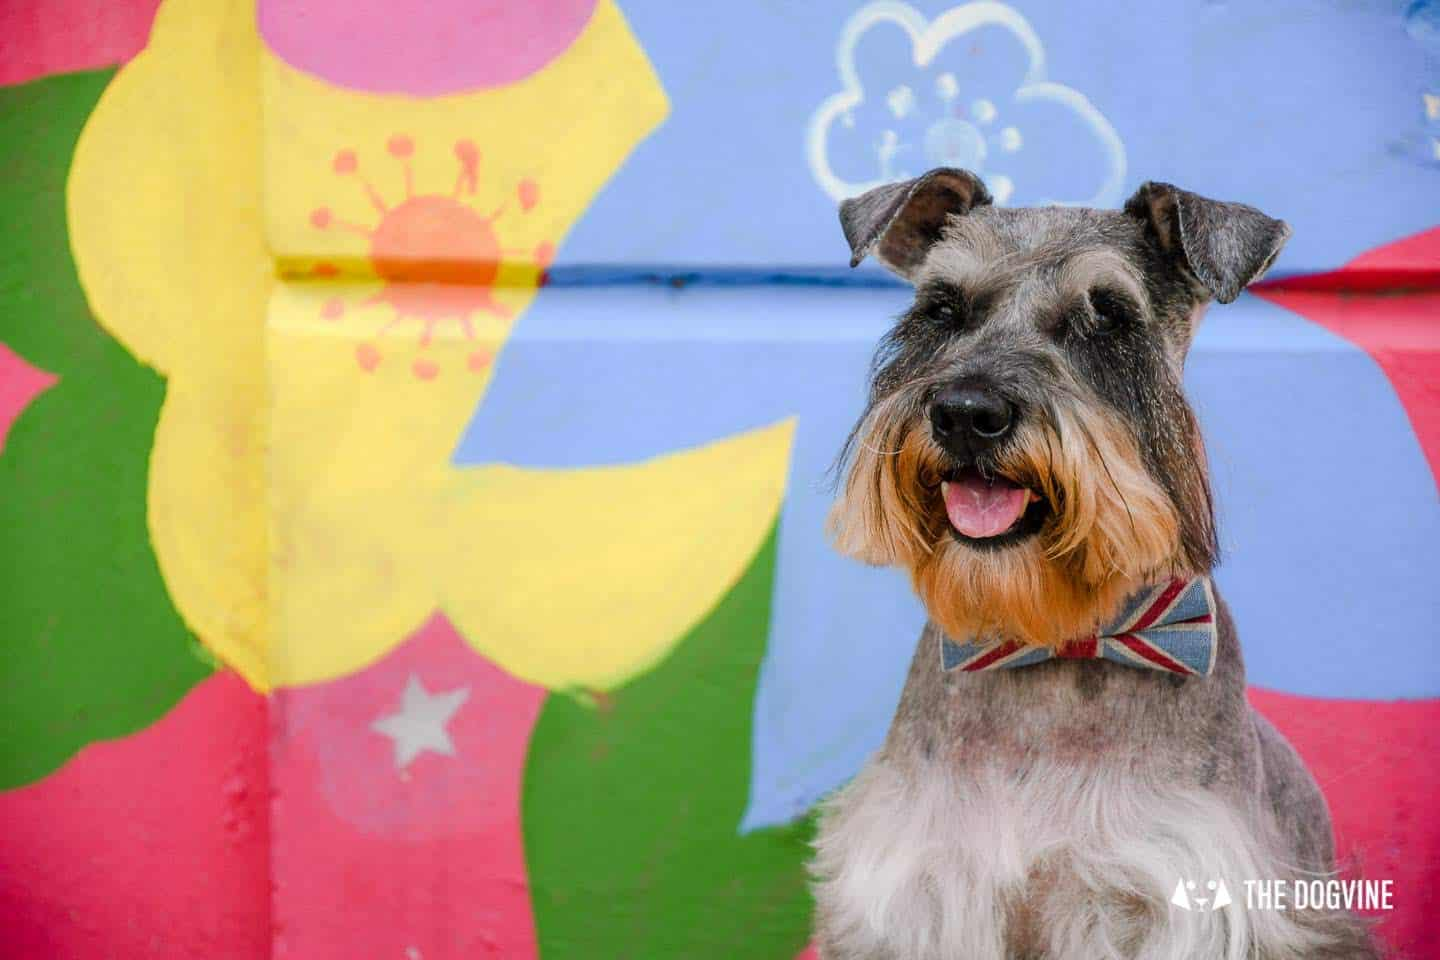 Your London Dog Events Agenda for 13-18 October - Pepper the Schnauzer